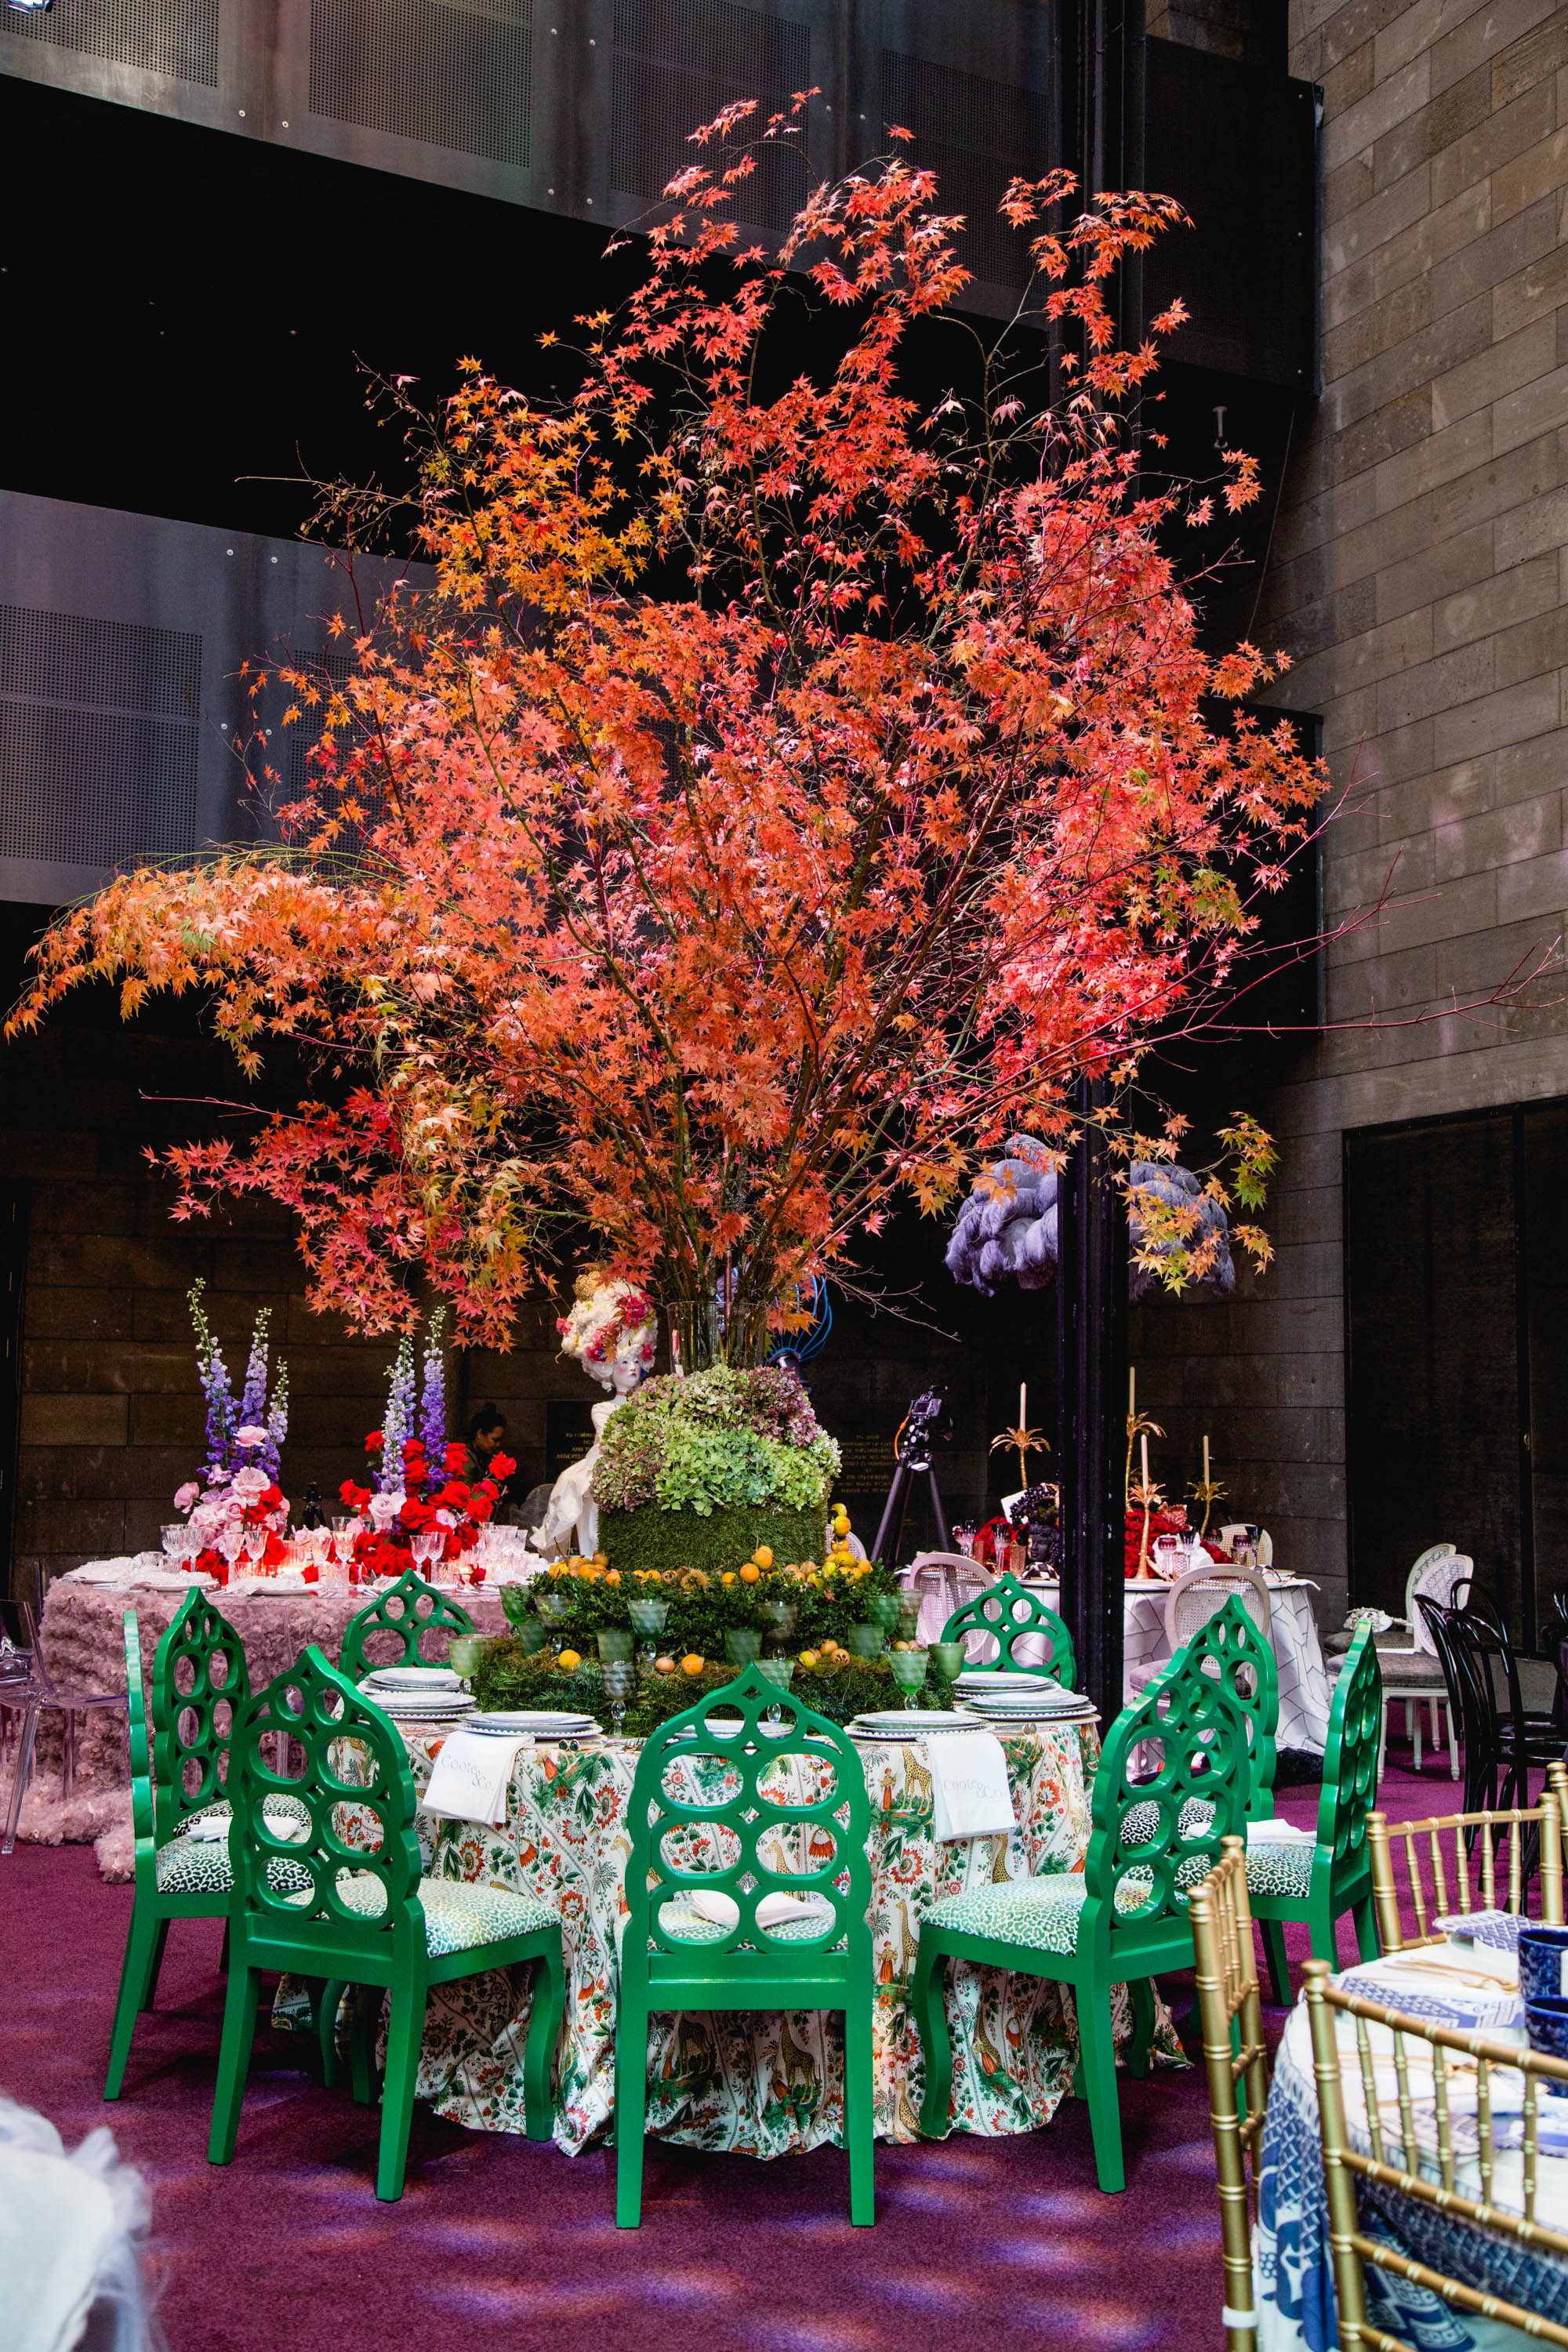 The Art of Dining 2019 : NGV / Table design by Coote & Co.